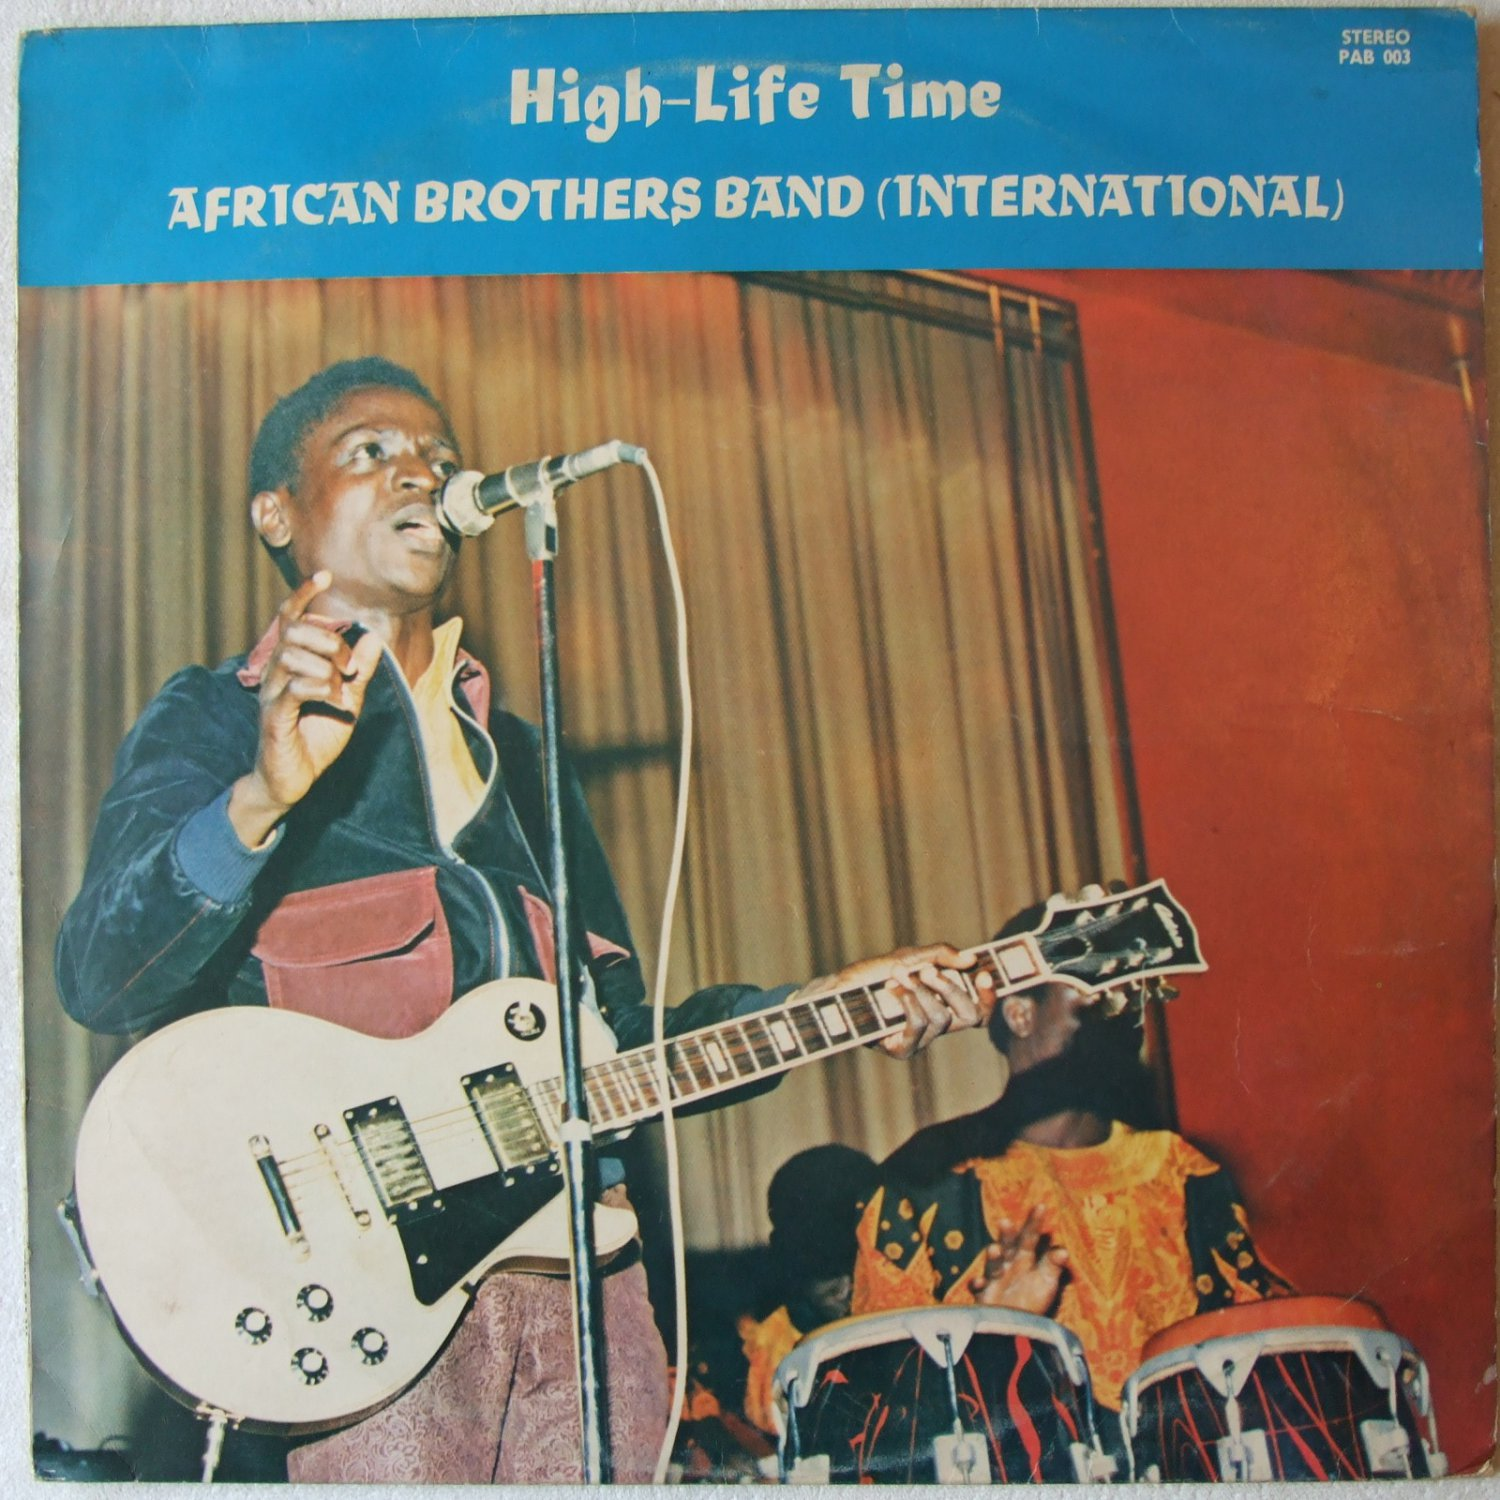 AFRICAN BROTHERS BAND high life time LP DANCEFLOOR HIGHLIFE PSYCH LATIN mp3 listen